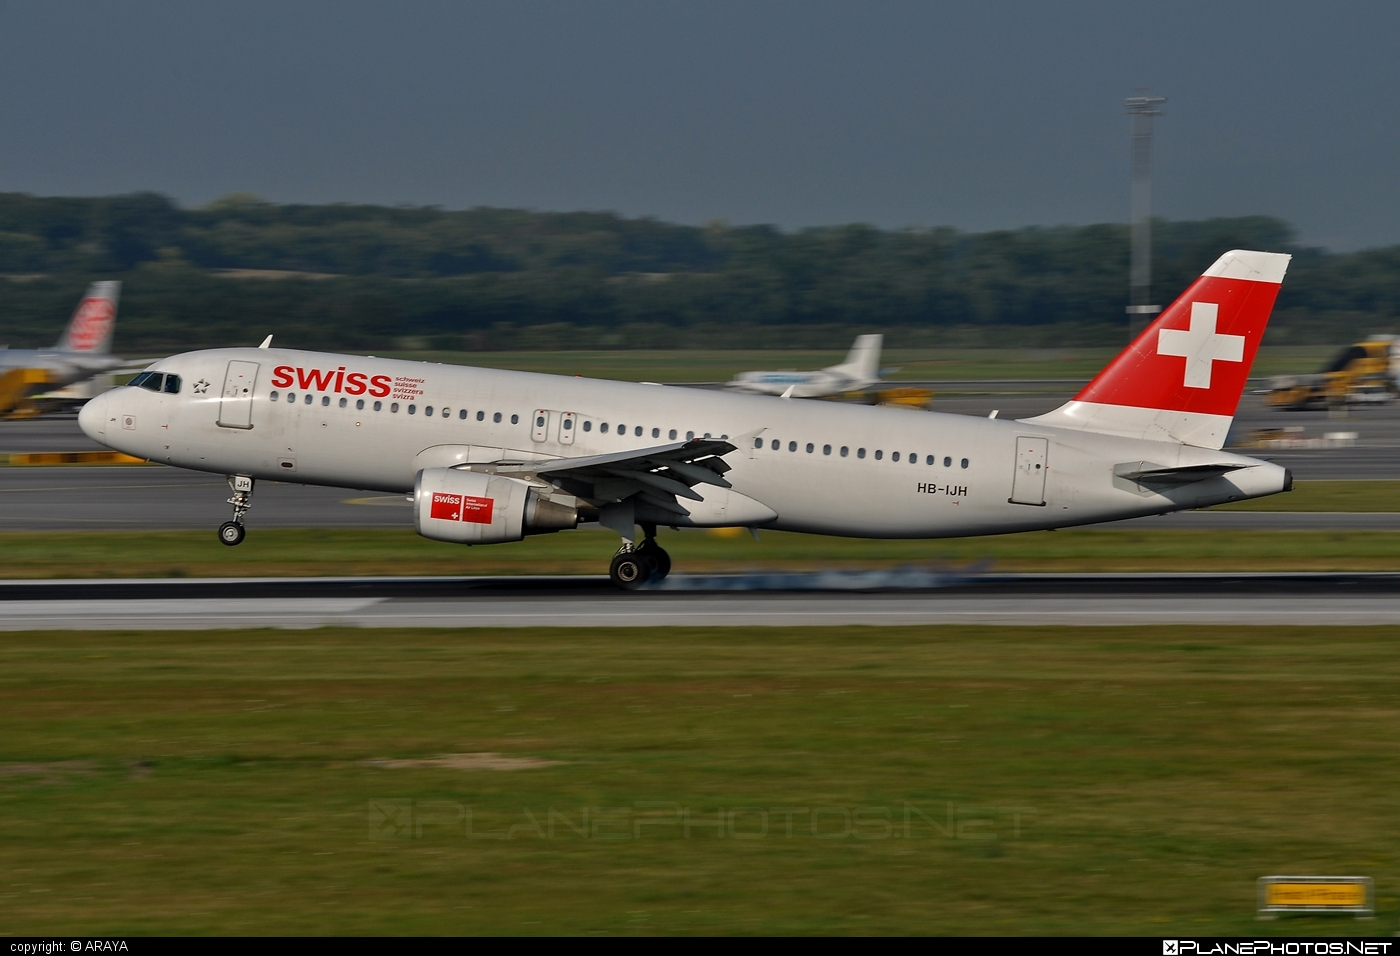 Airbus A320-214 - HB-IJH operated by Swiss International Air Lines #a320 #a320family #airbus #airbus320 #swiss #swissairlines